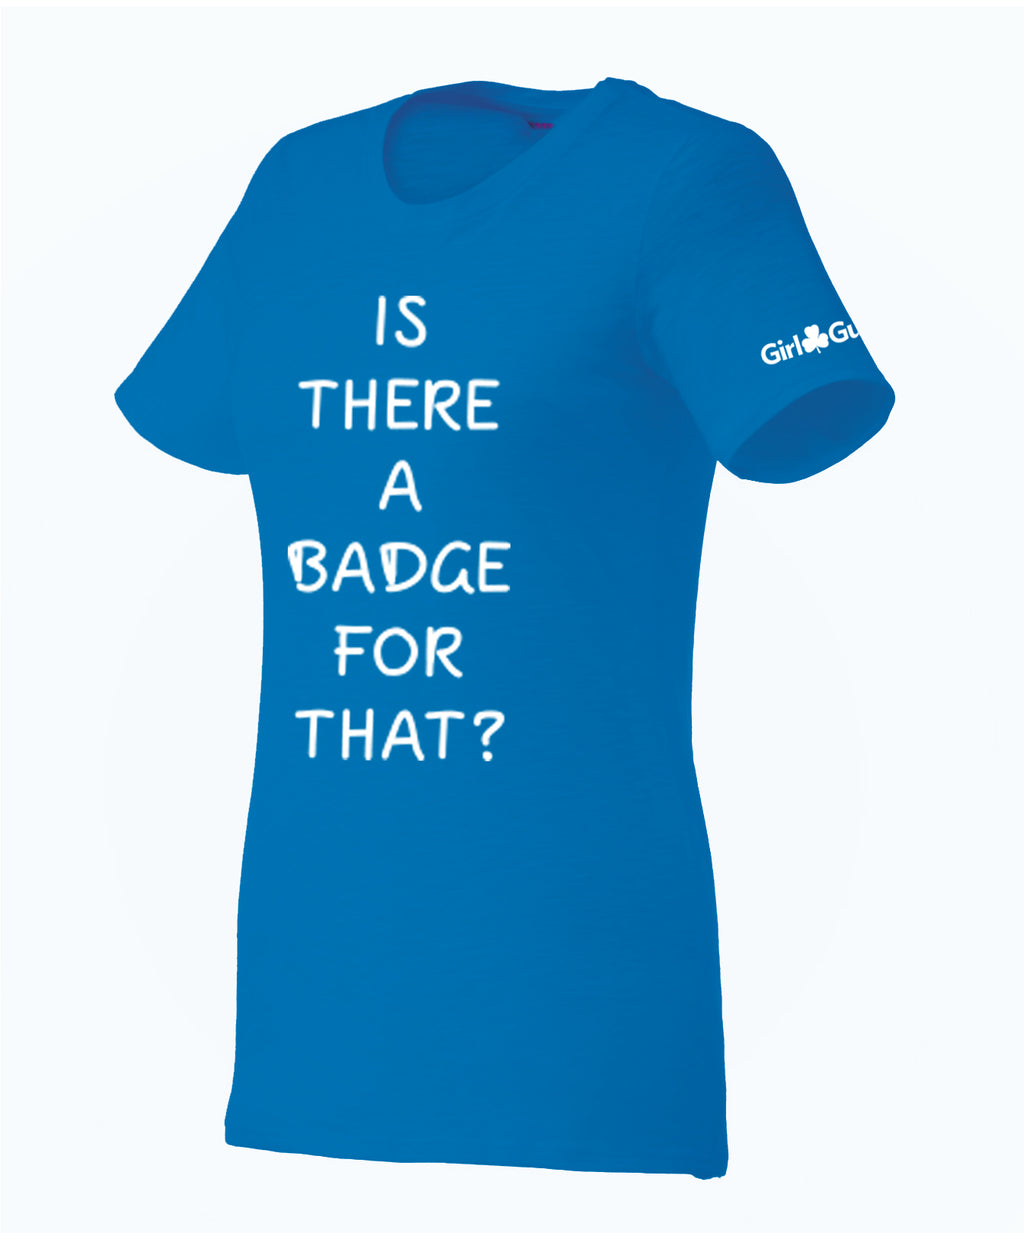 IS THERE A BADGE FOR THAT? T-SHIRT YOUTH